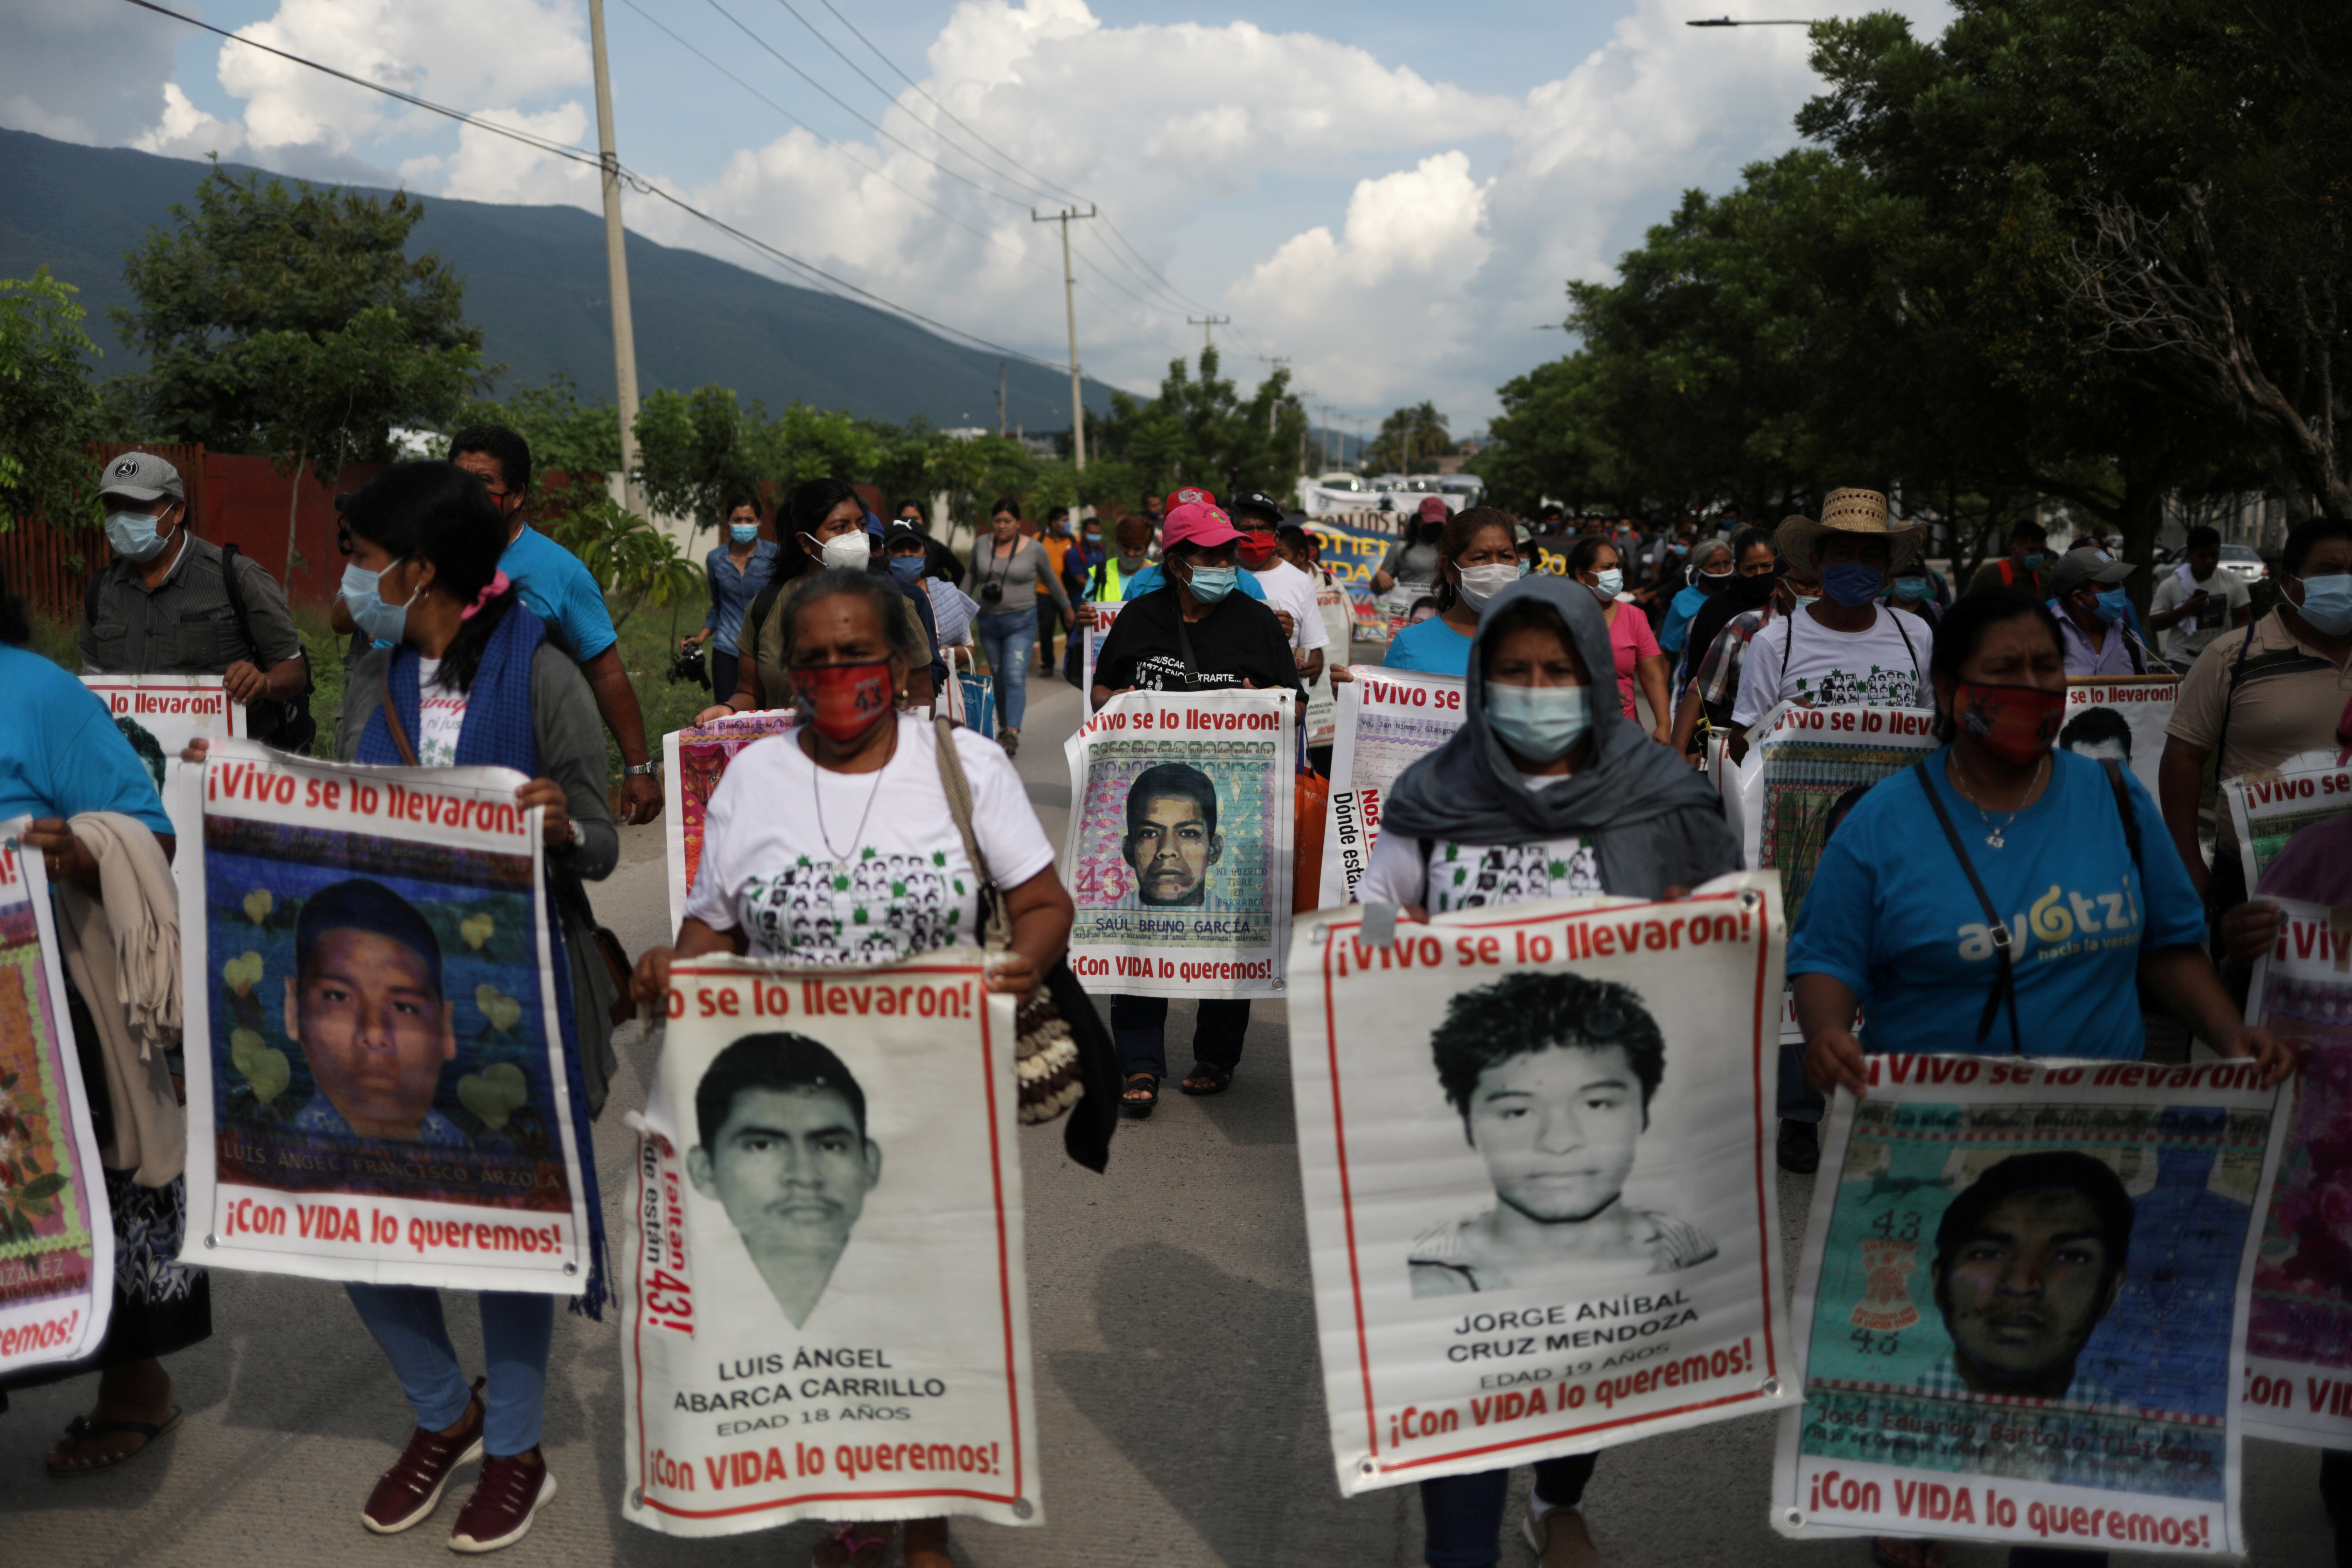 Relatives of missing students hold posters with their images as they take part in a march to mark the sixth anniversary of the disappearance of 43 students of the Ayotzinapa Teacher Training College, in Iguala in the southwestern state of Guerrero, Mexico September 27, 2020. REUTERS/Henry Romero